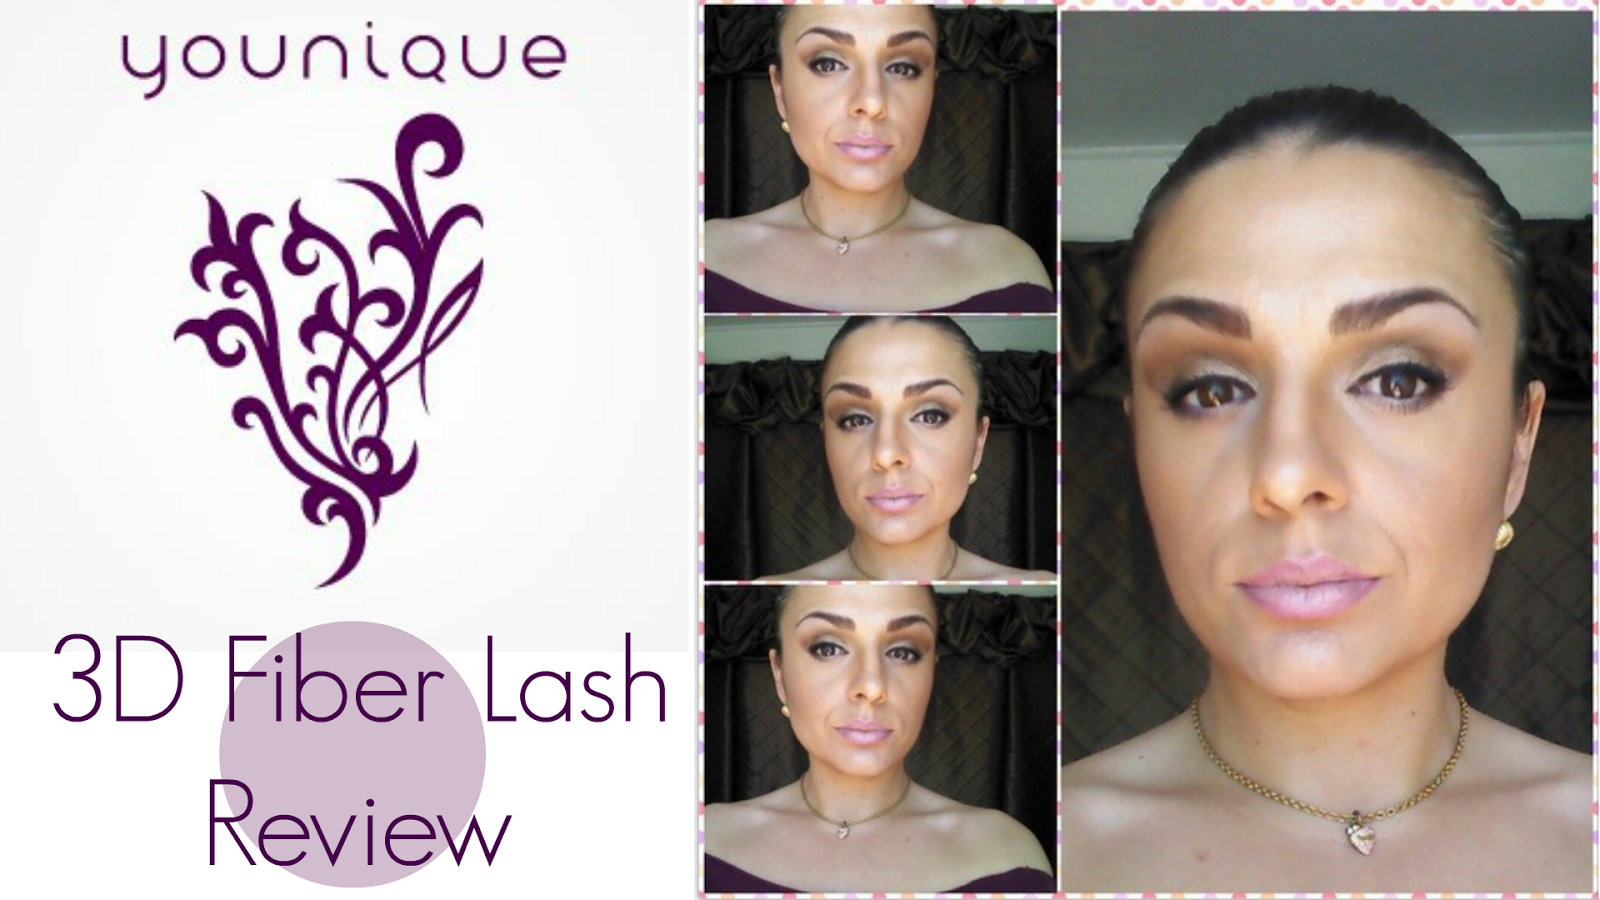 younique 3D fiber lashes, fiber lashes, eyelashes.get bigger lashes, fuller eyelashes, review,